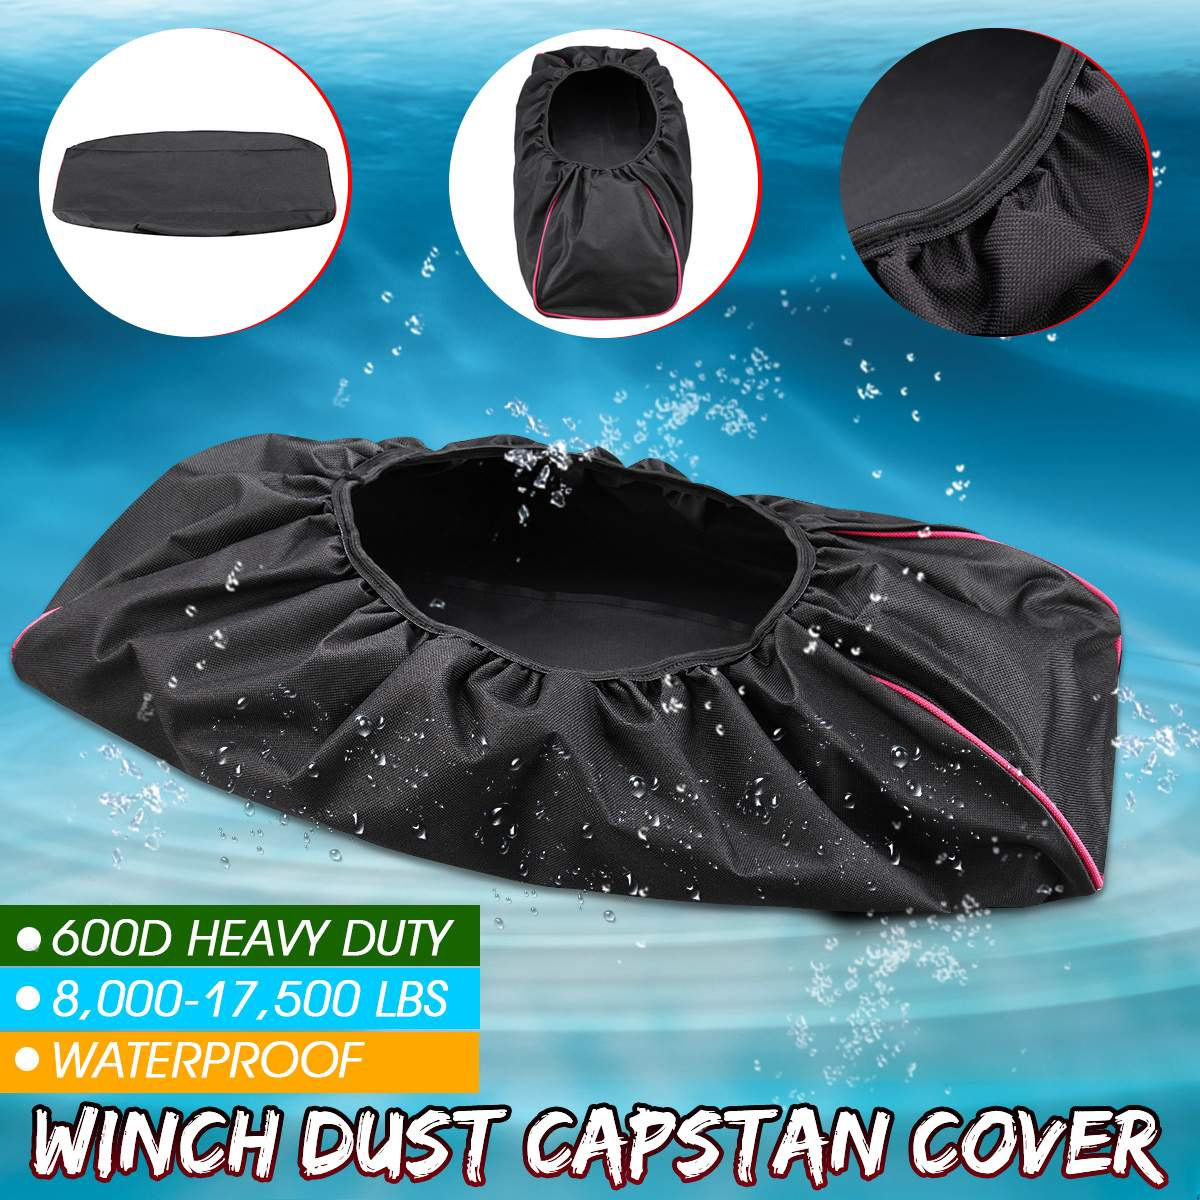 Waterproof Winch Cover,Black Waterproof Anti-dust Soft Winch Cover 8,000-17,500 lbs Capacity Trailer SUVs